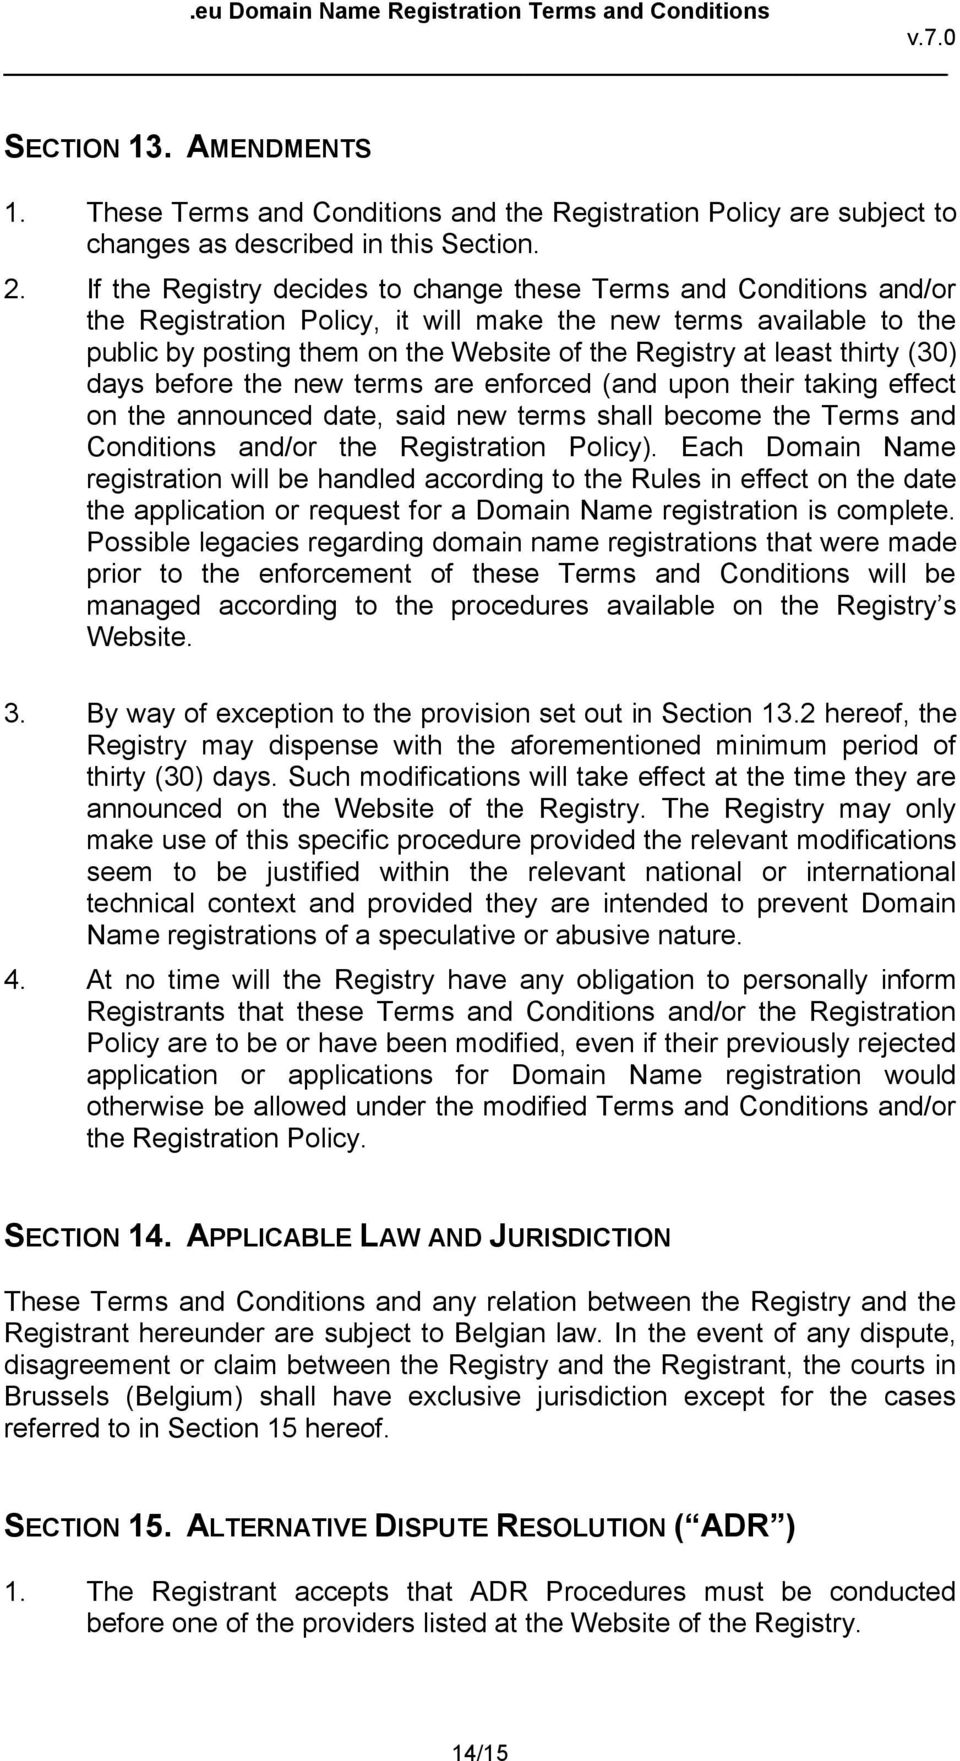 thirty (30) days before the new terms are enforced (and upon their taking effect on the announced date, said new terms shall become the Terms and Conditions and/or the Registration Policy).